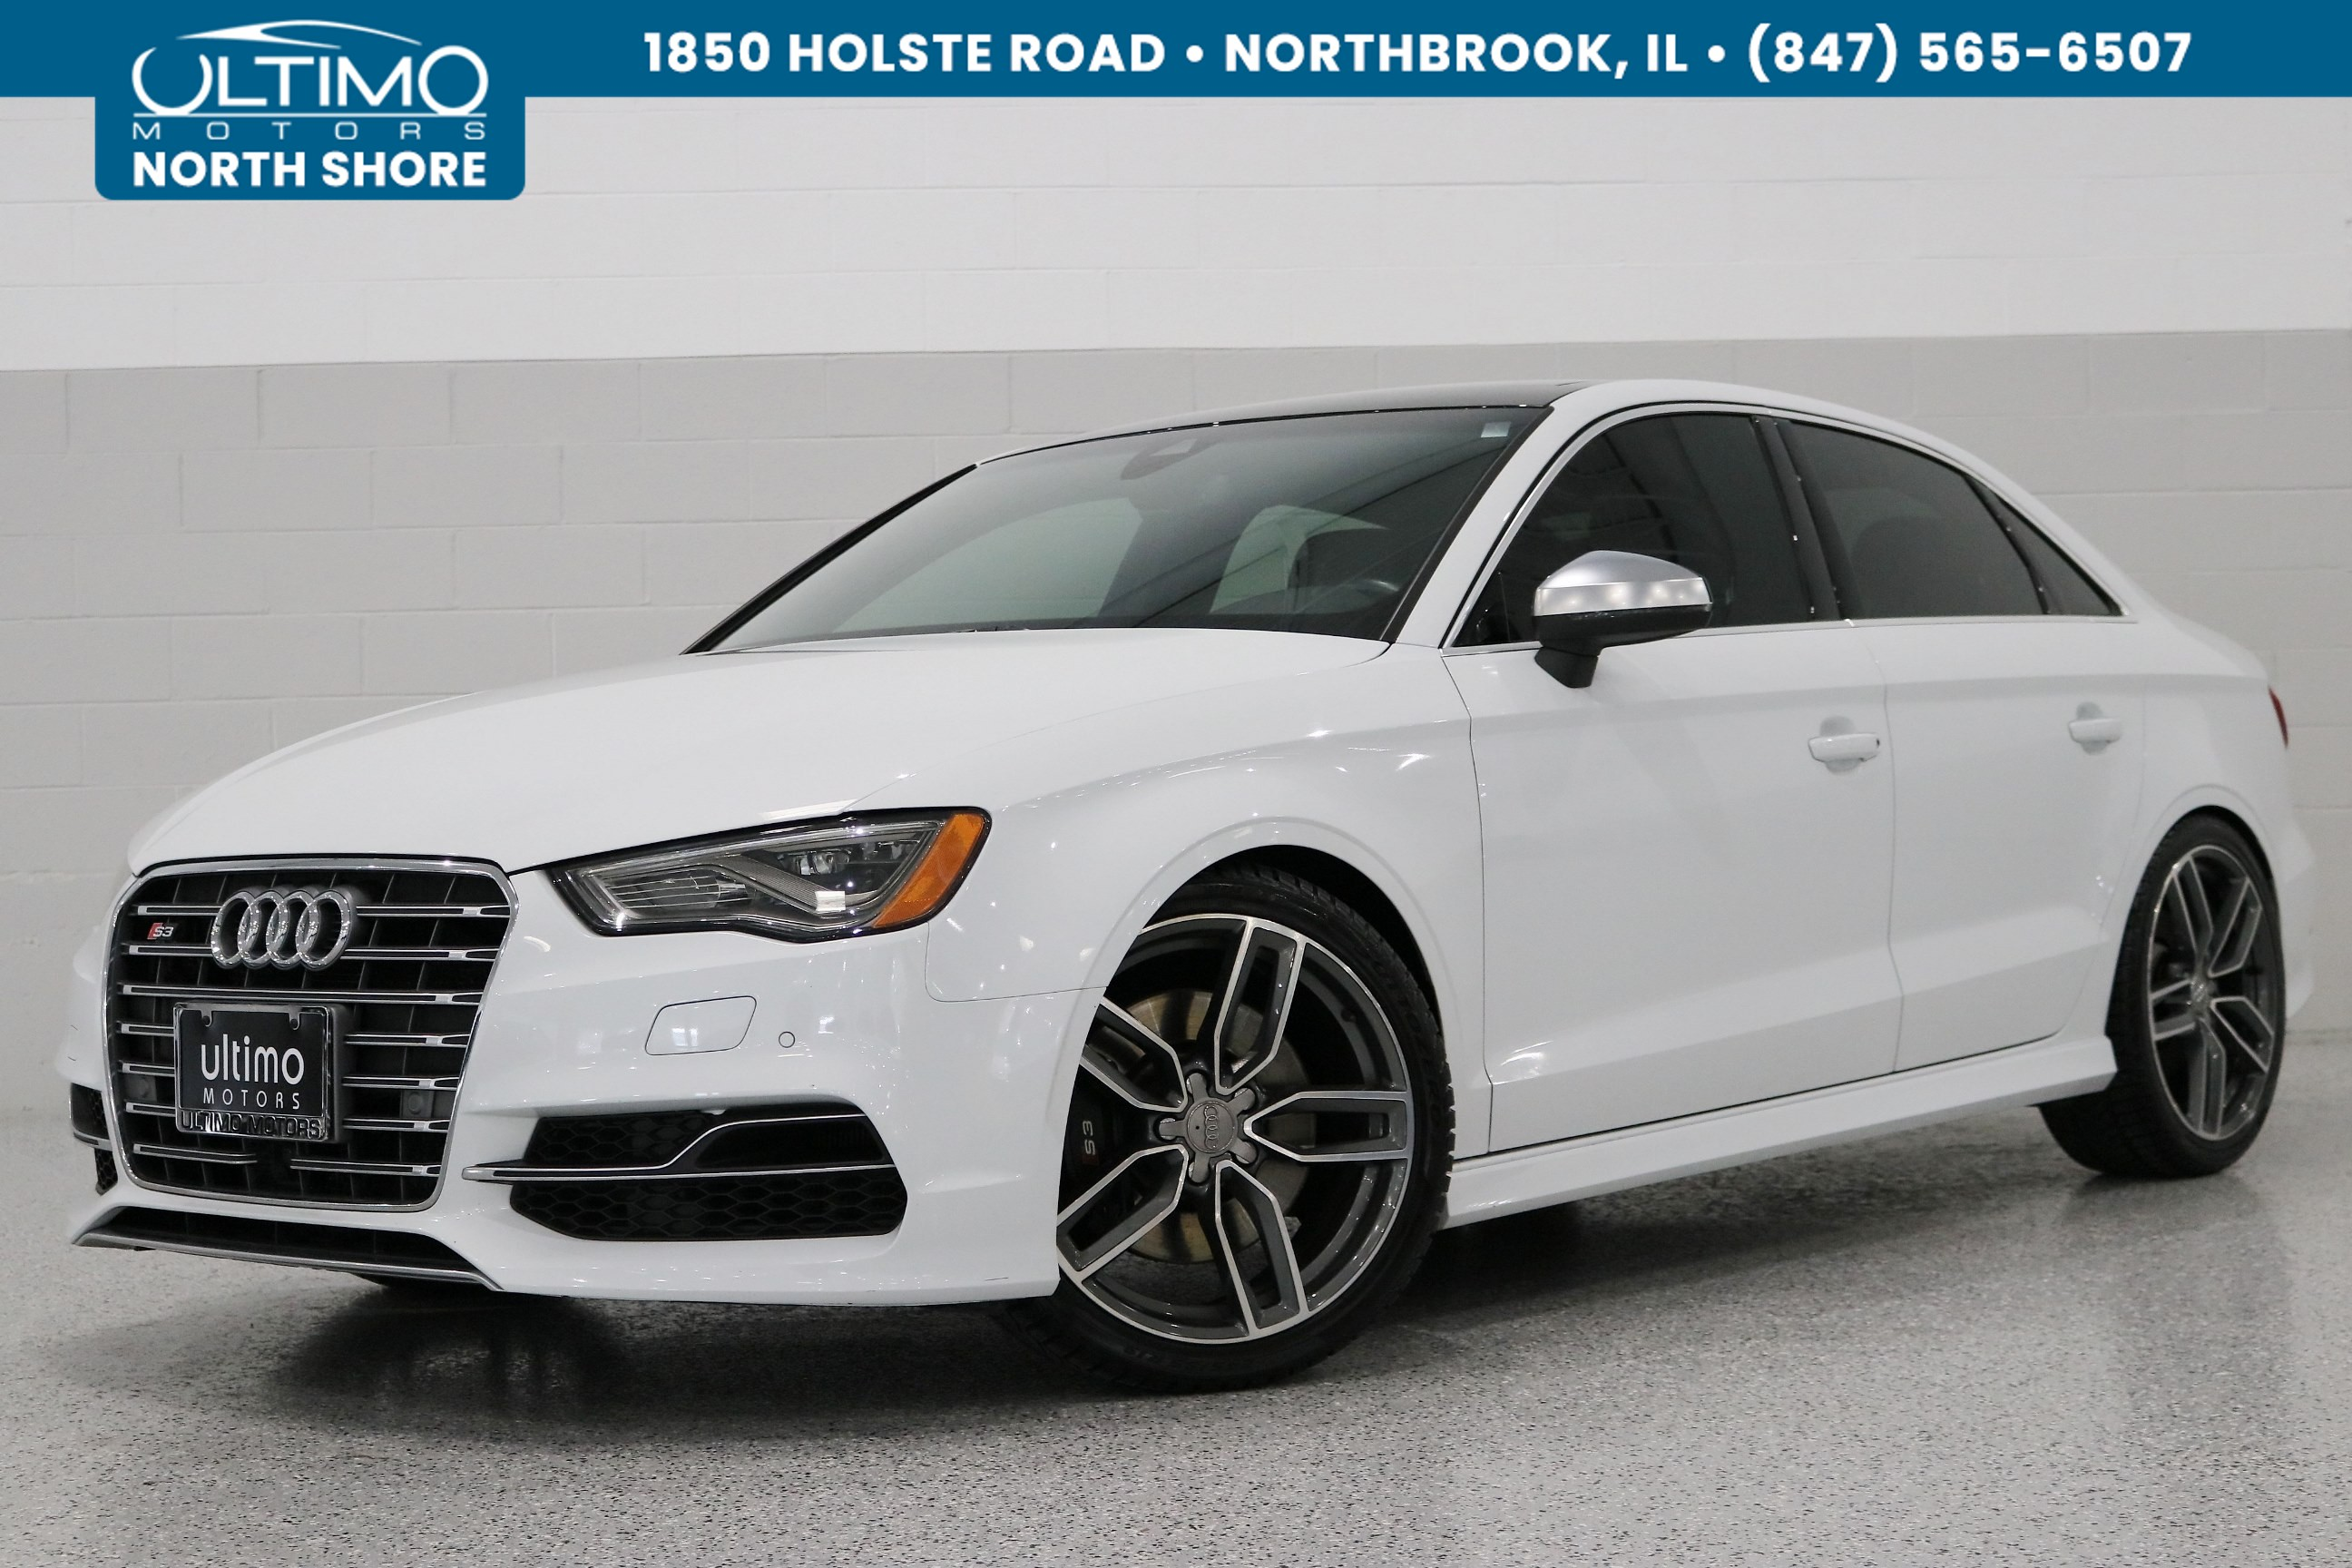 Pre-Owned 2016 Audi S3 Prestige, 19 Inch Performance Package.